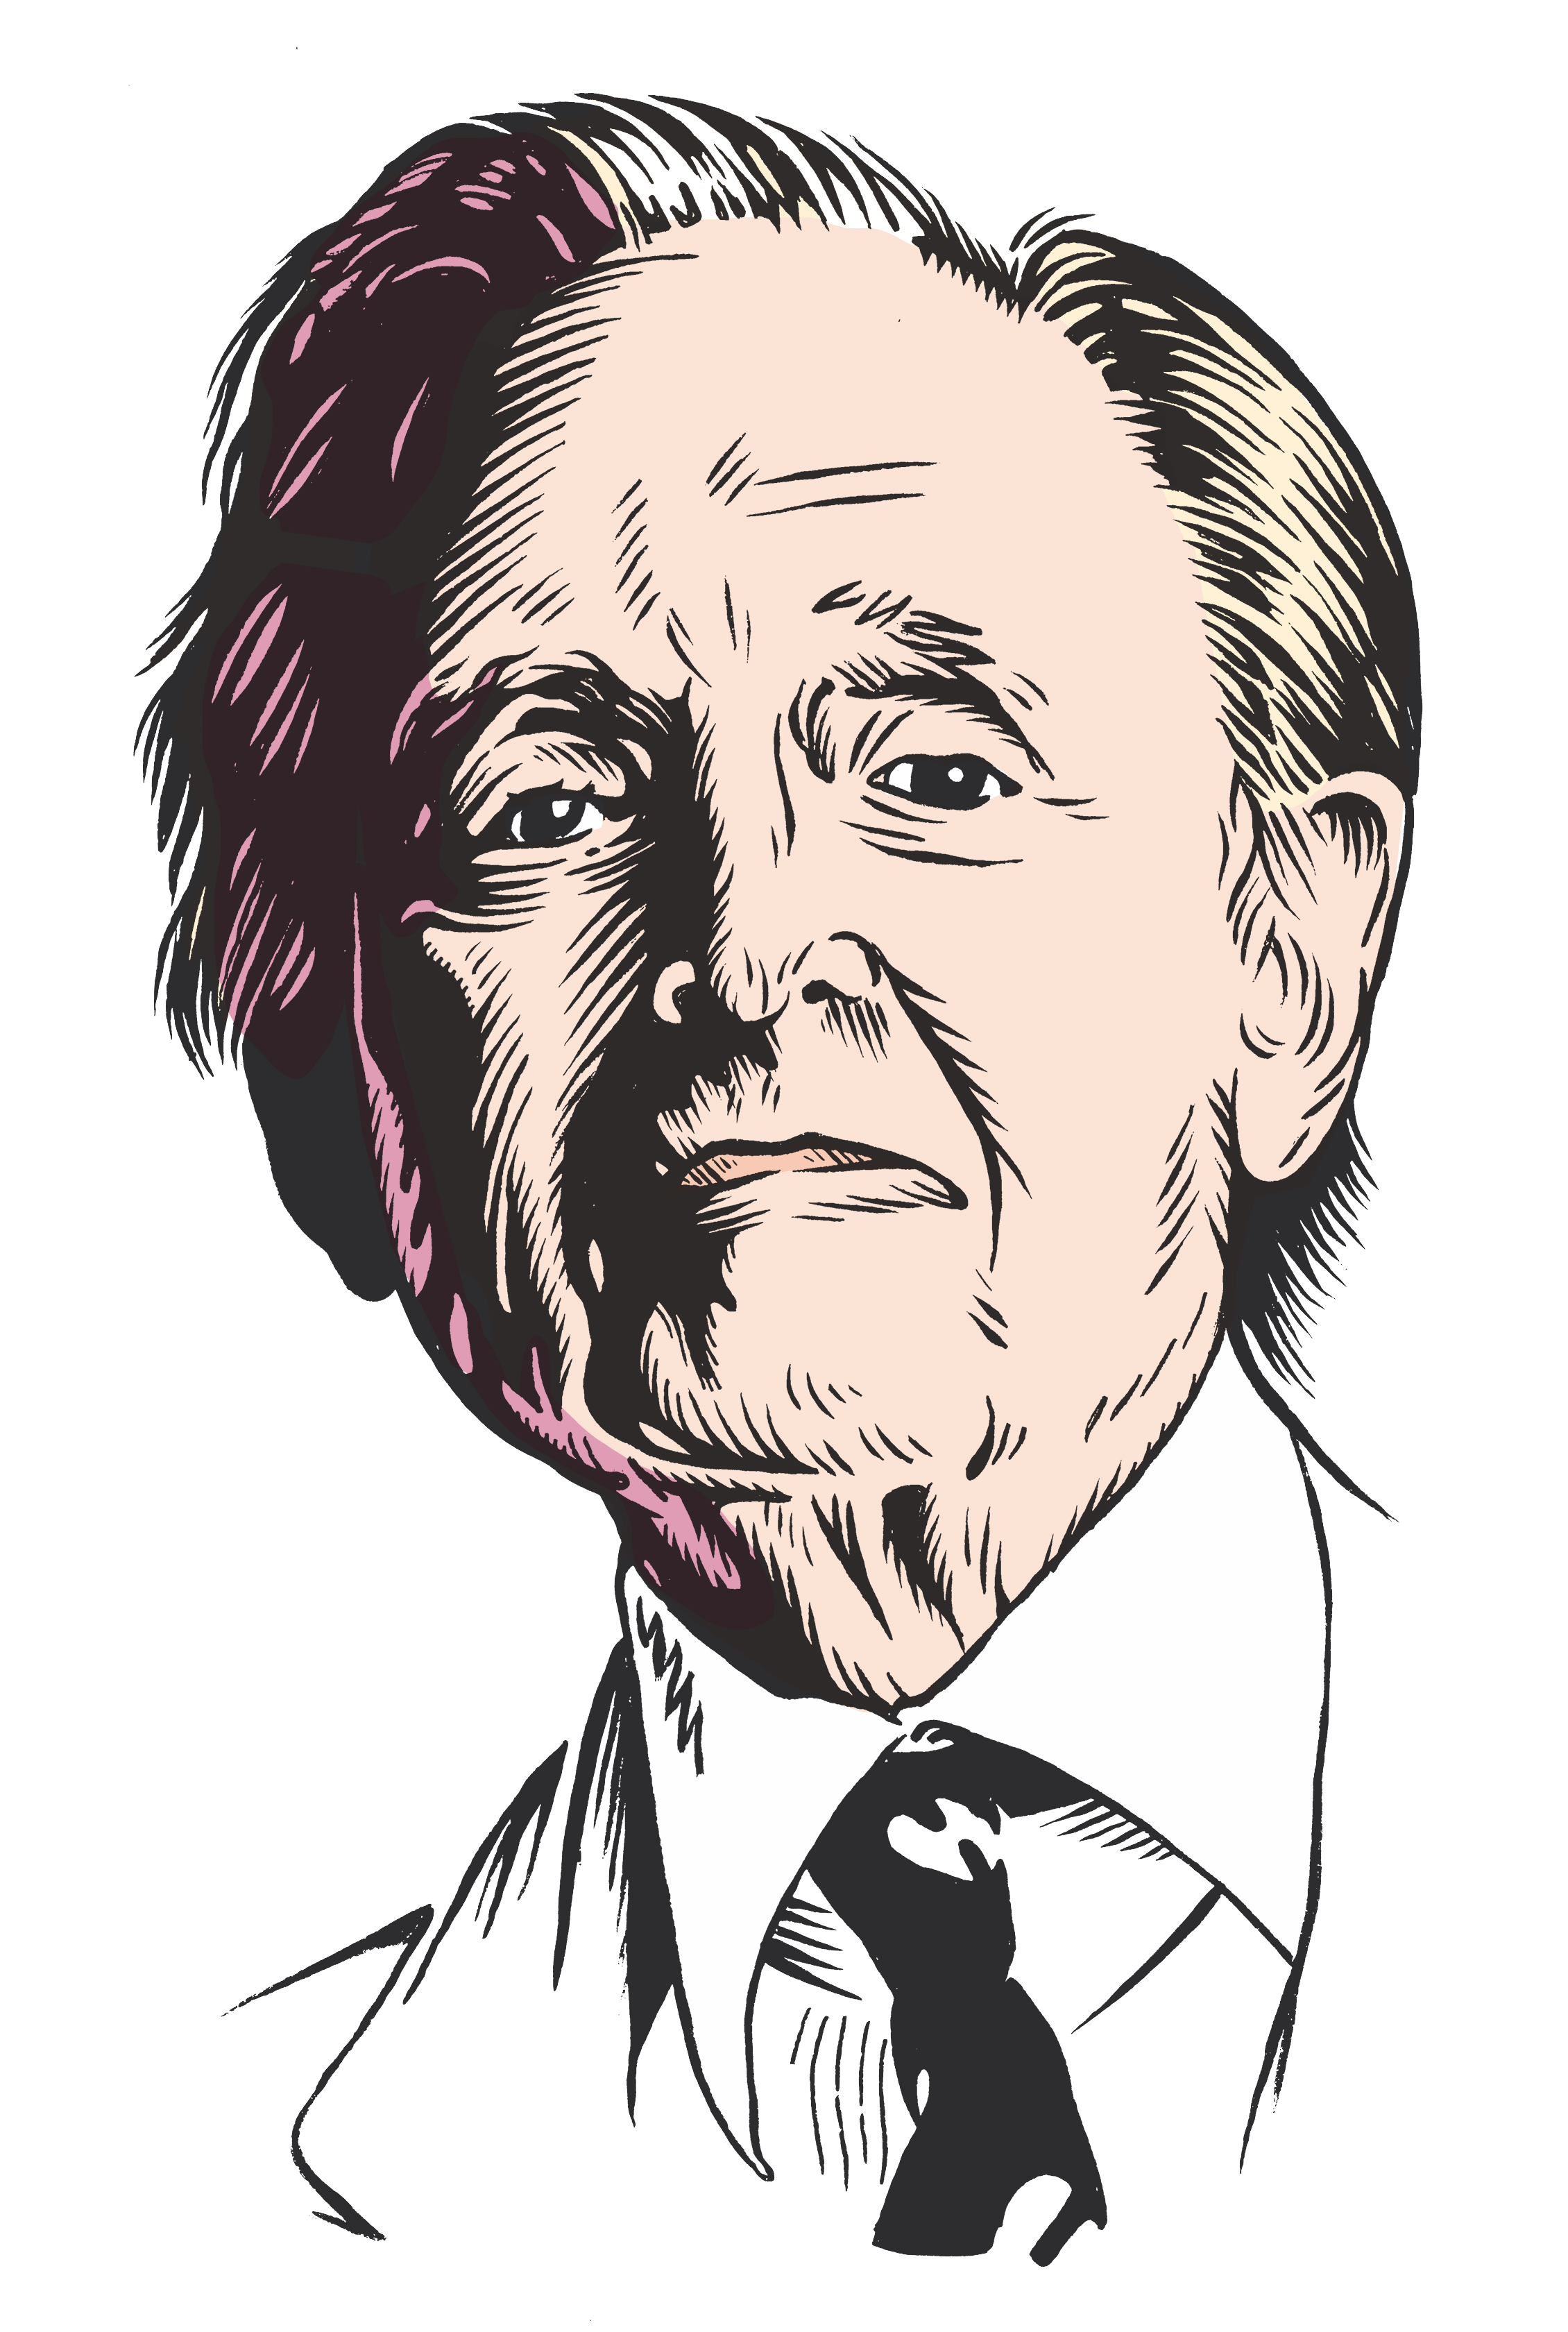 les auteurs du 1 : Tom Wolfe